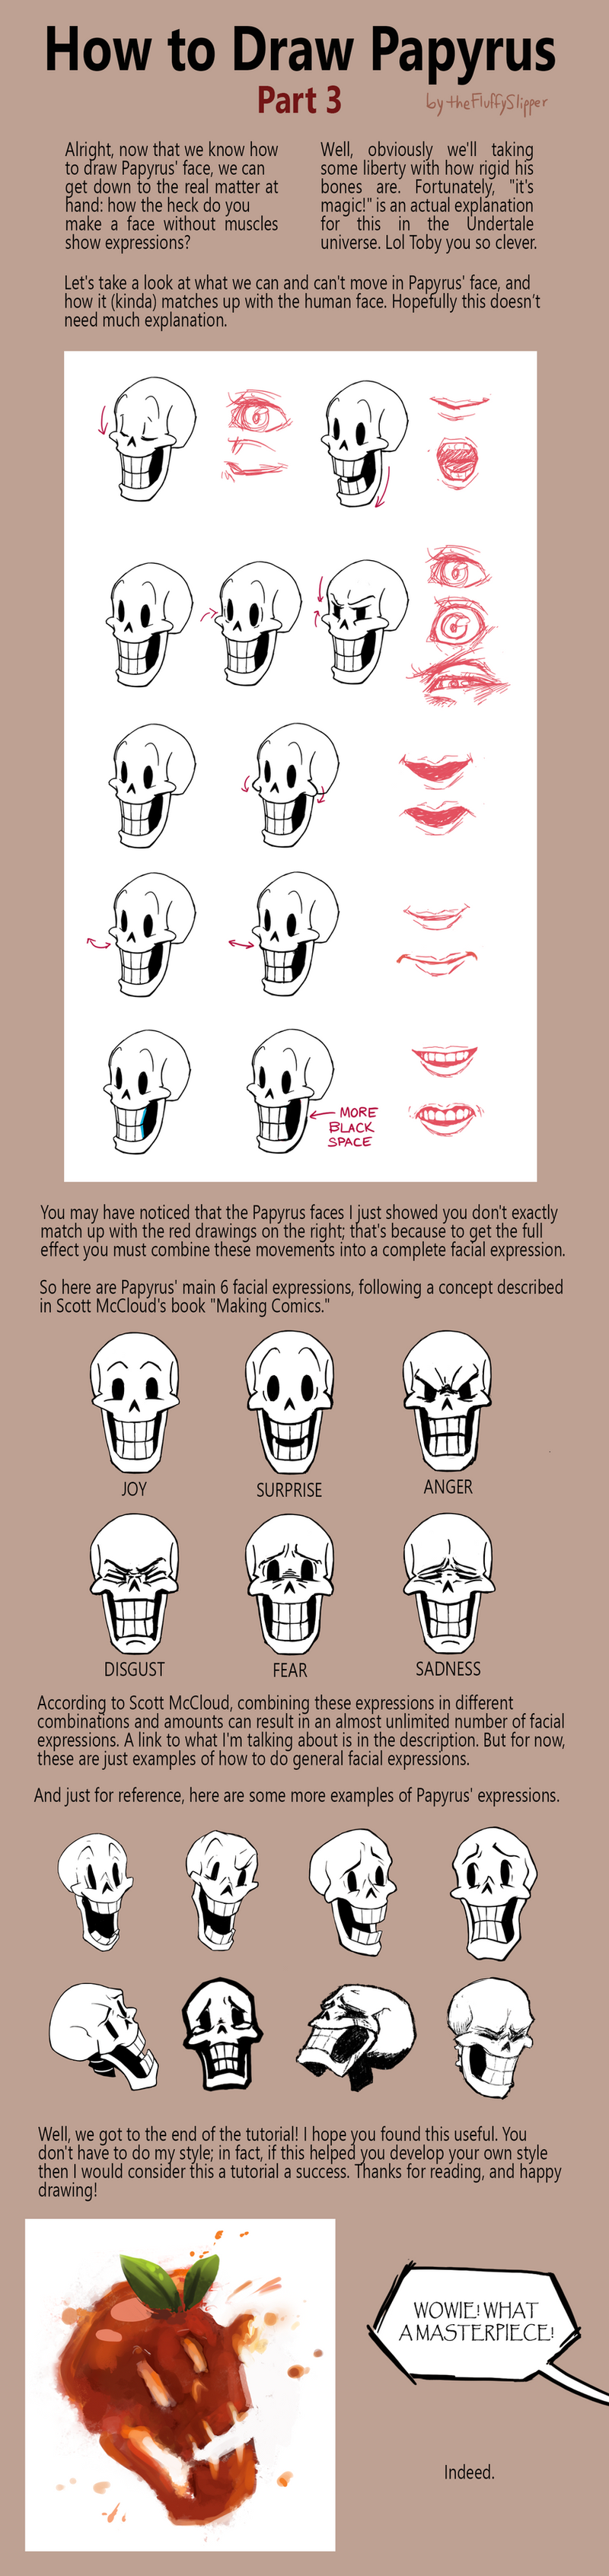 How To Draw Papyrus Part 3 By FluffySlipper On DeviantArt